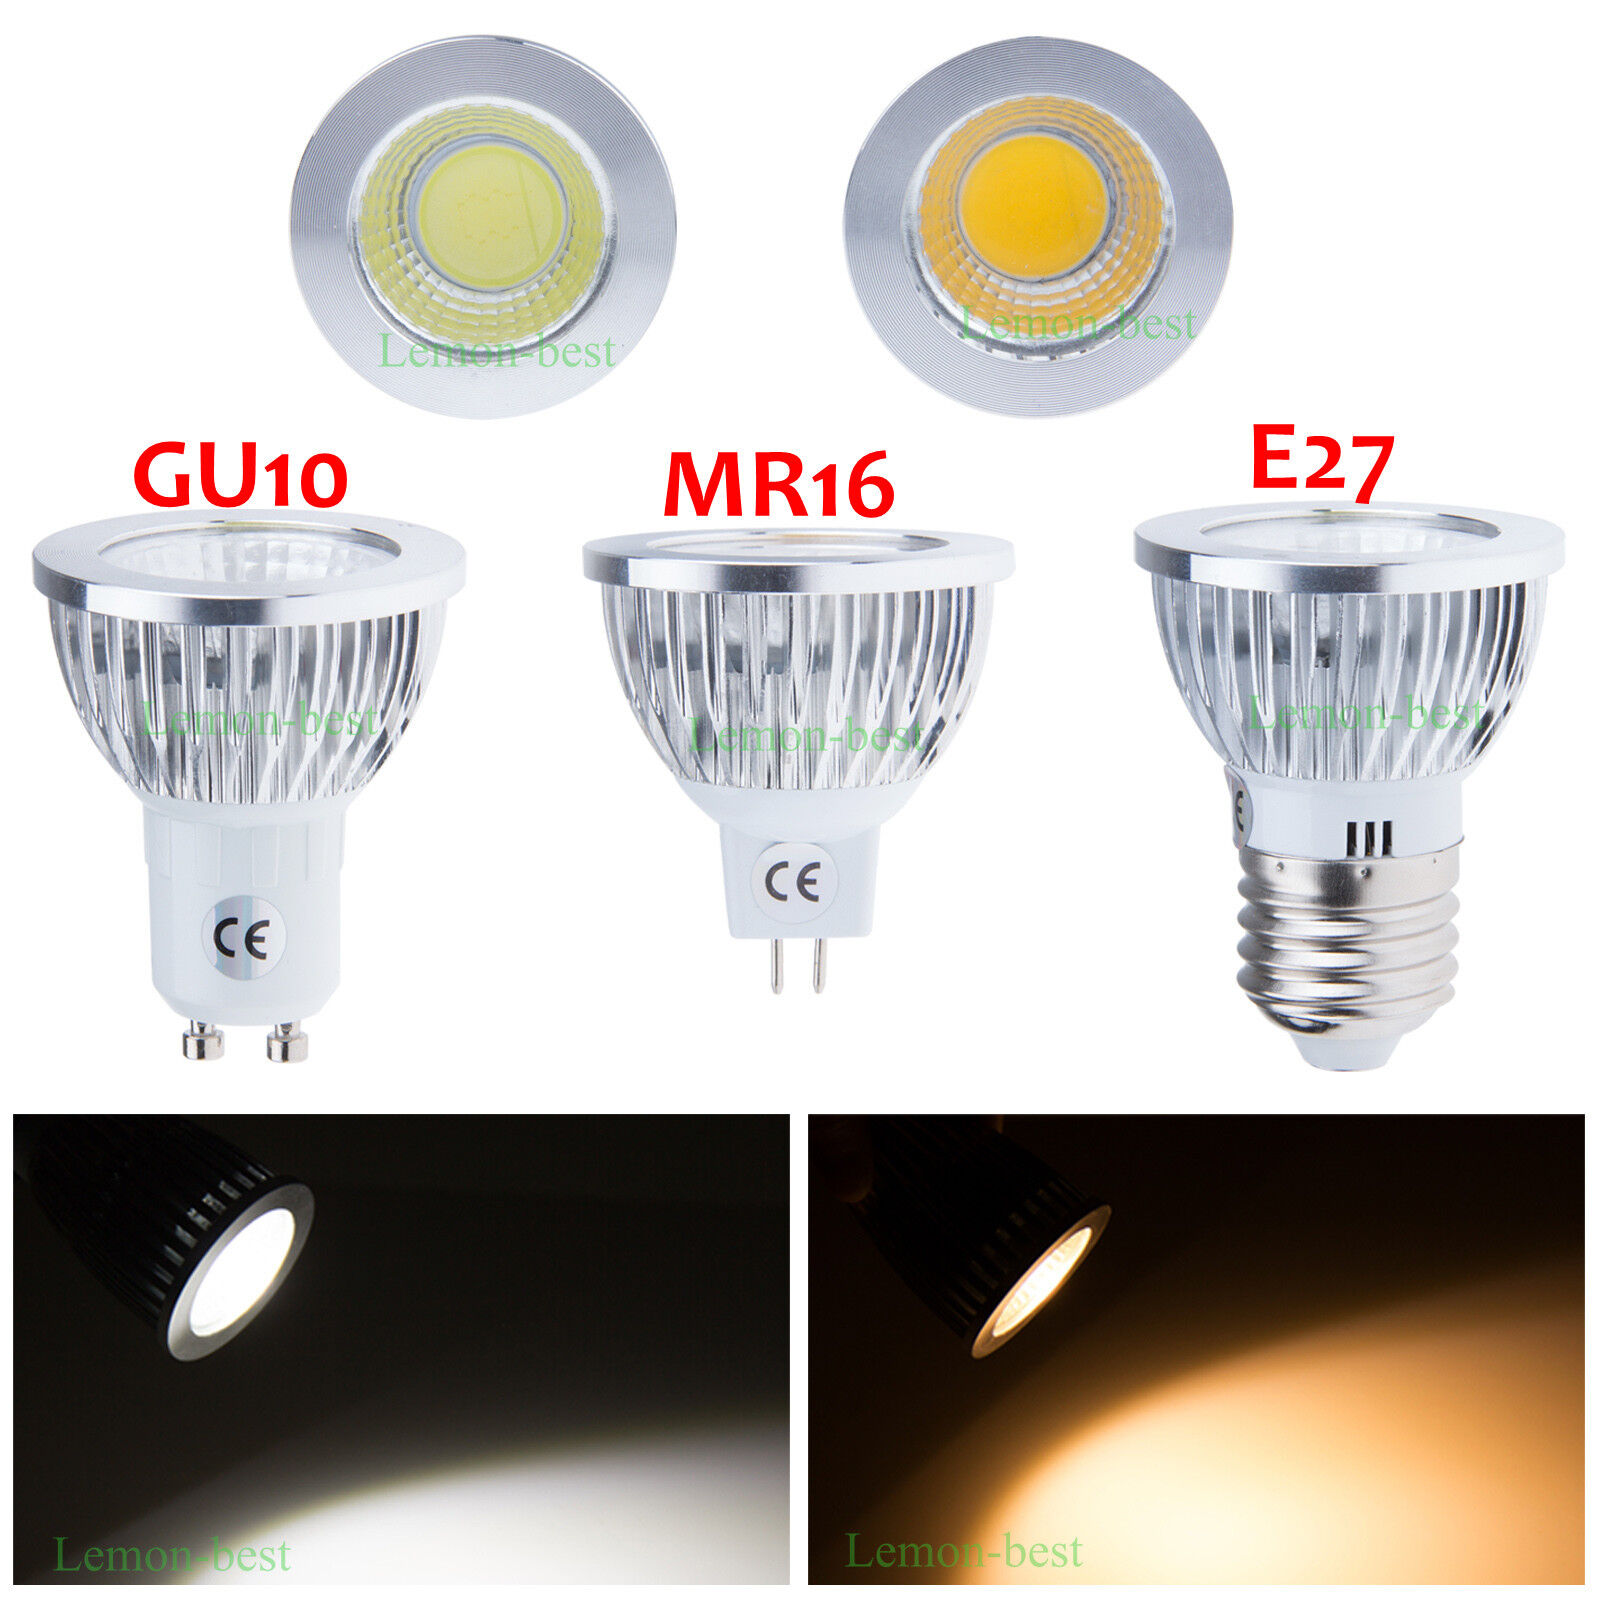 gu10 e27 mr16 dimmable led ampoule spotlight lamp bulb 9w 12w 15w warm day white ebay. Black Bedroom Furniture Sets. Home Design Ideas